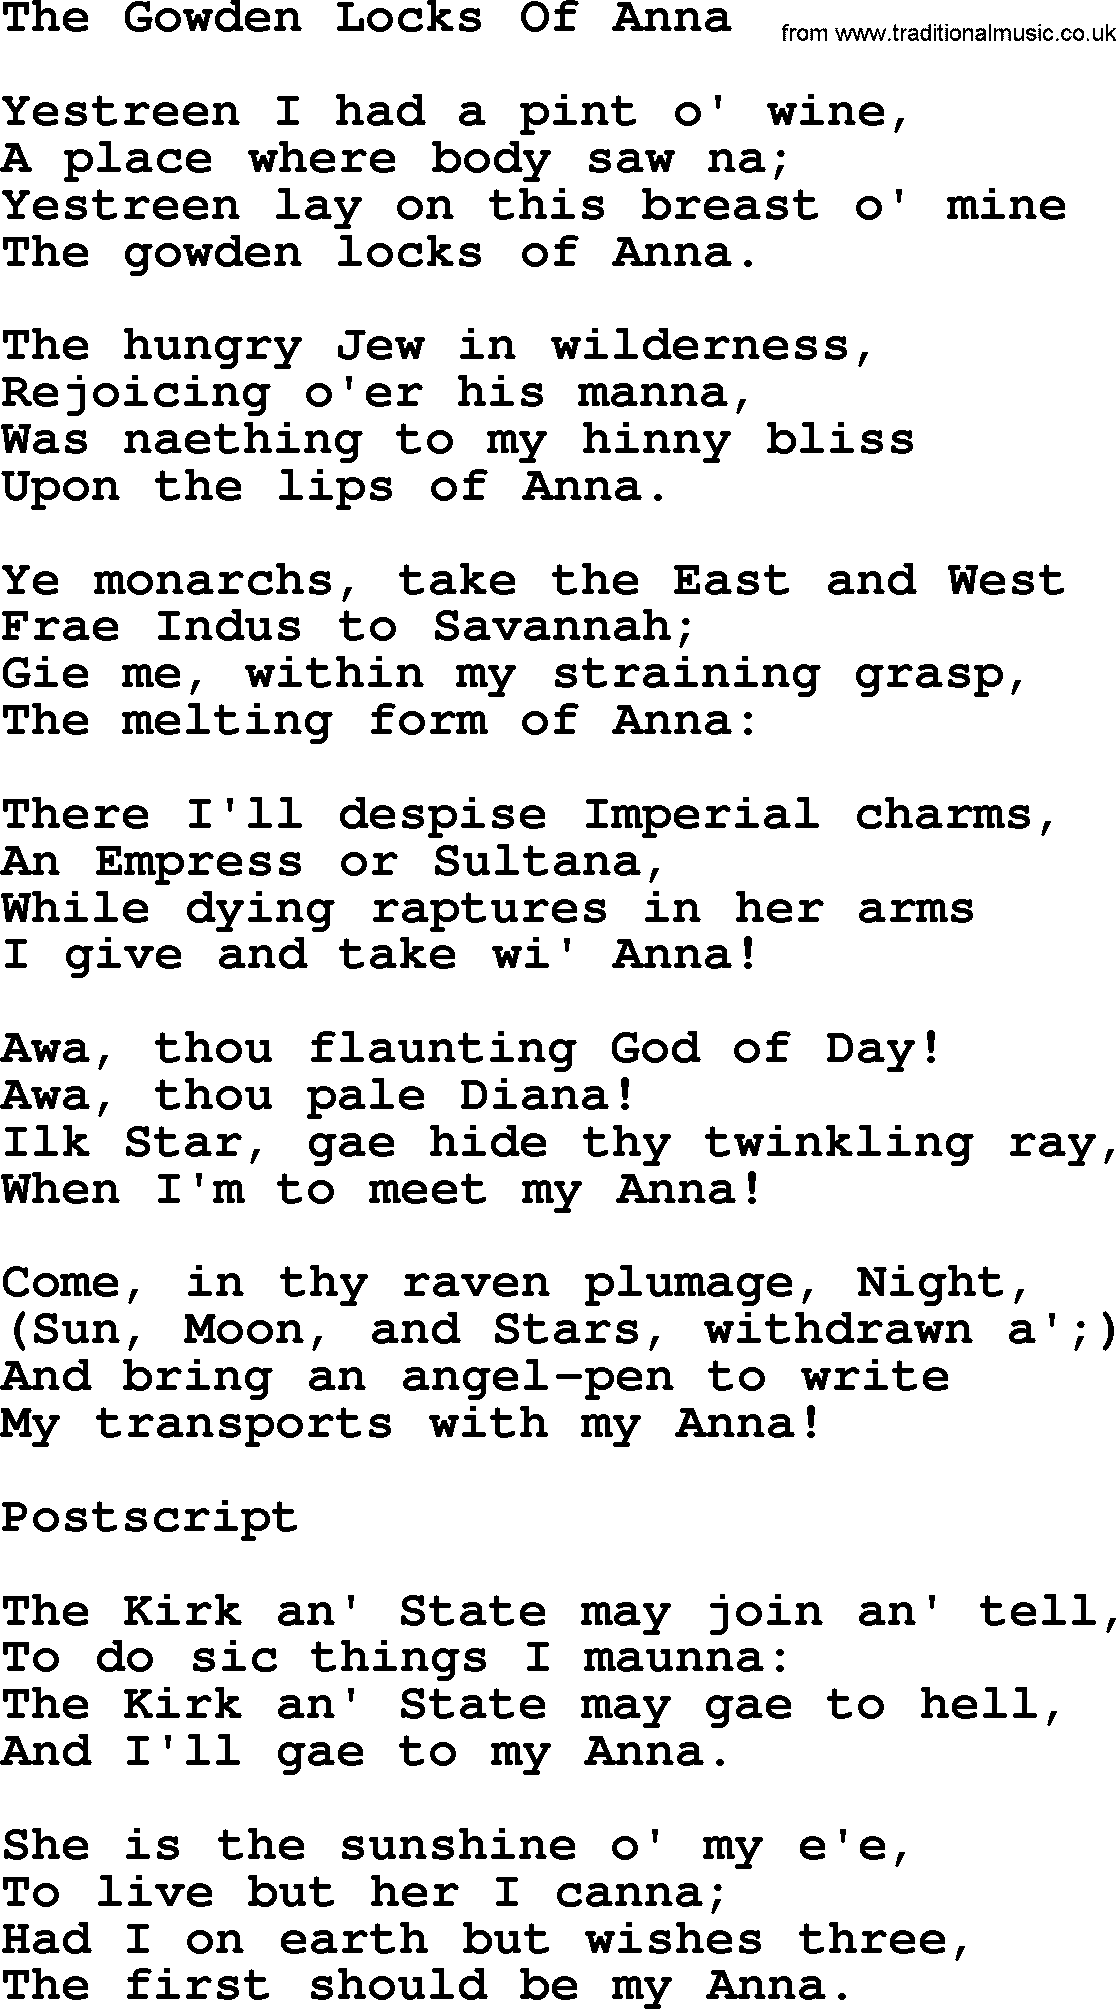 The Gowden Locks Of Anna - Rober Burns Songs and lyrics